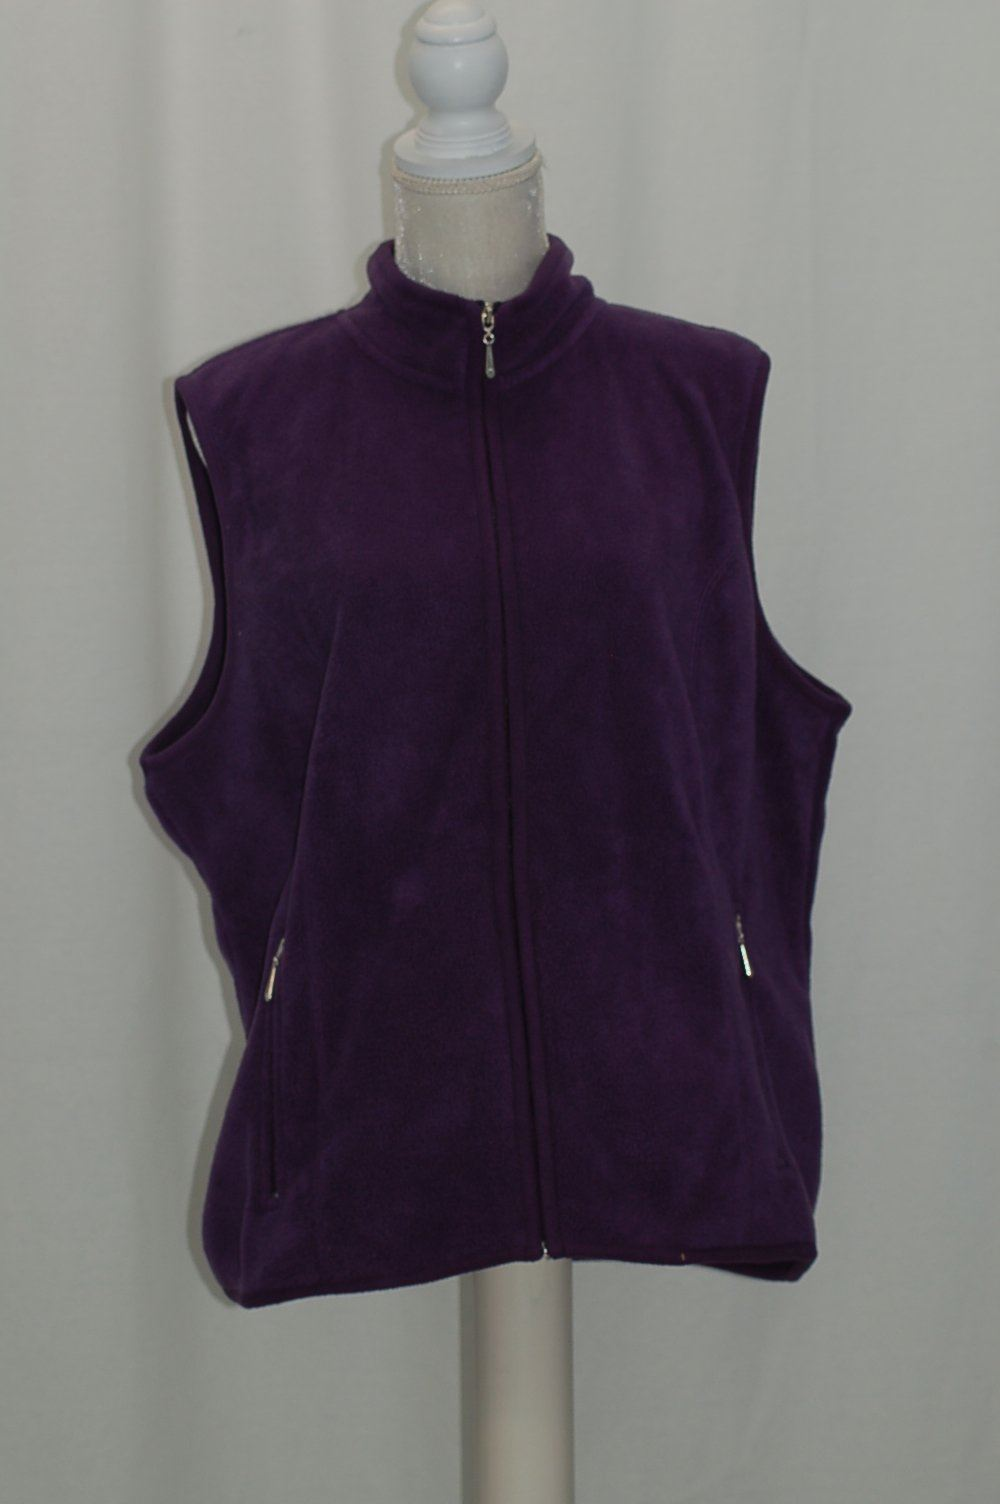 c0791993c3b KAREN SCOTT ZEROPROOF FLEECE VEST CASSIS XL 706258419167